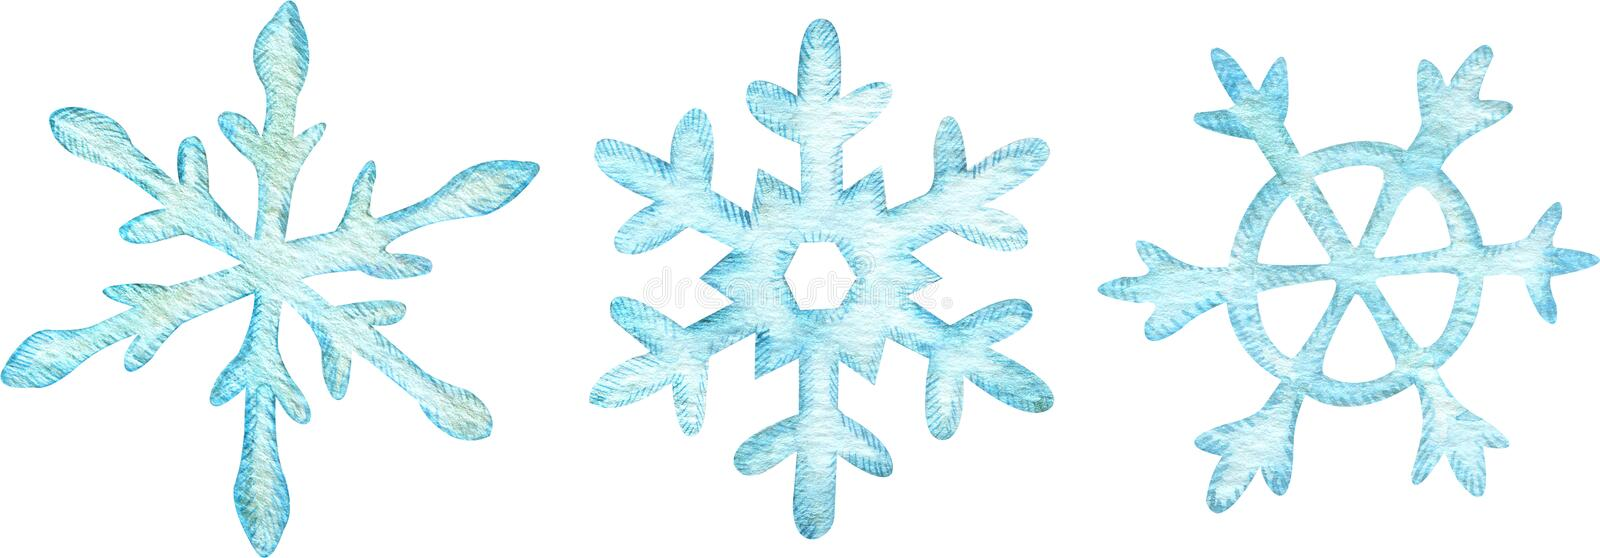 Watercolor set of light blue snowflakes. Christmas design elements isolated on white background royalty free illustration